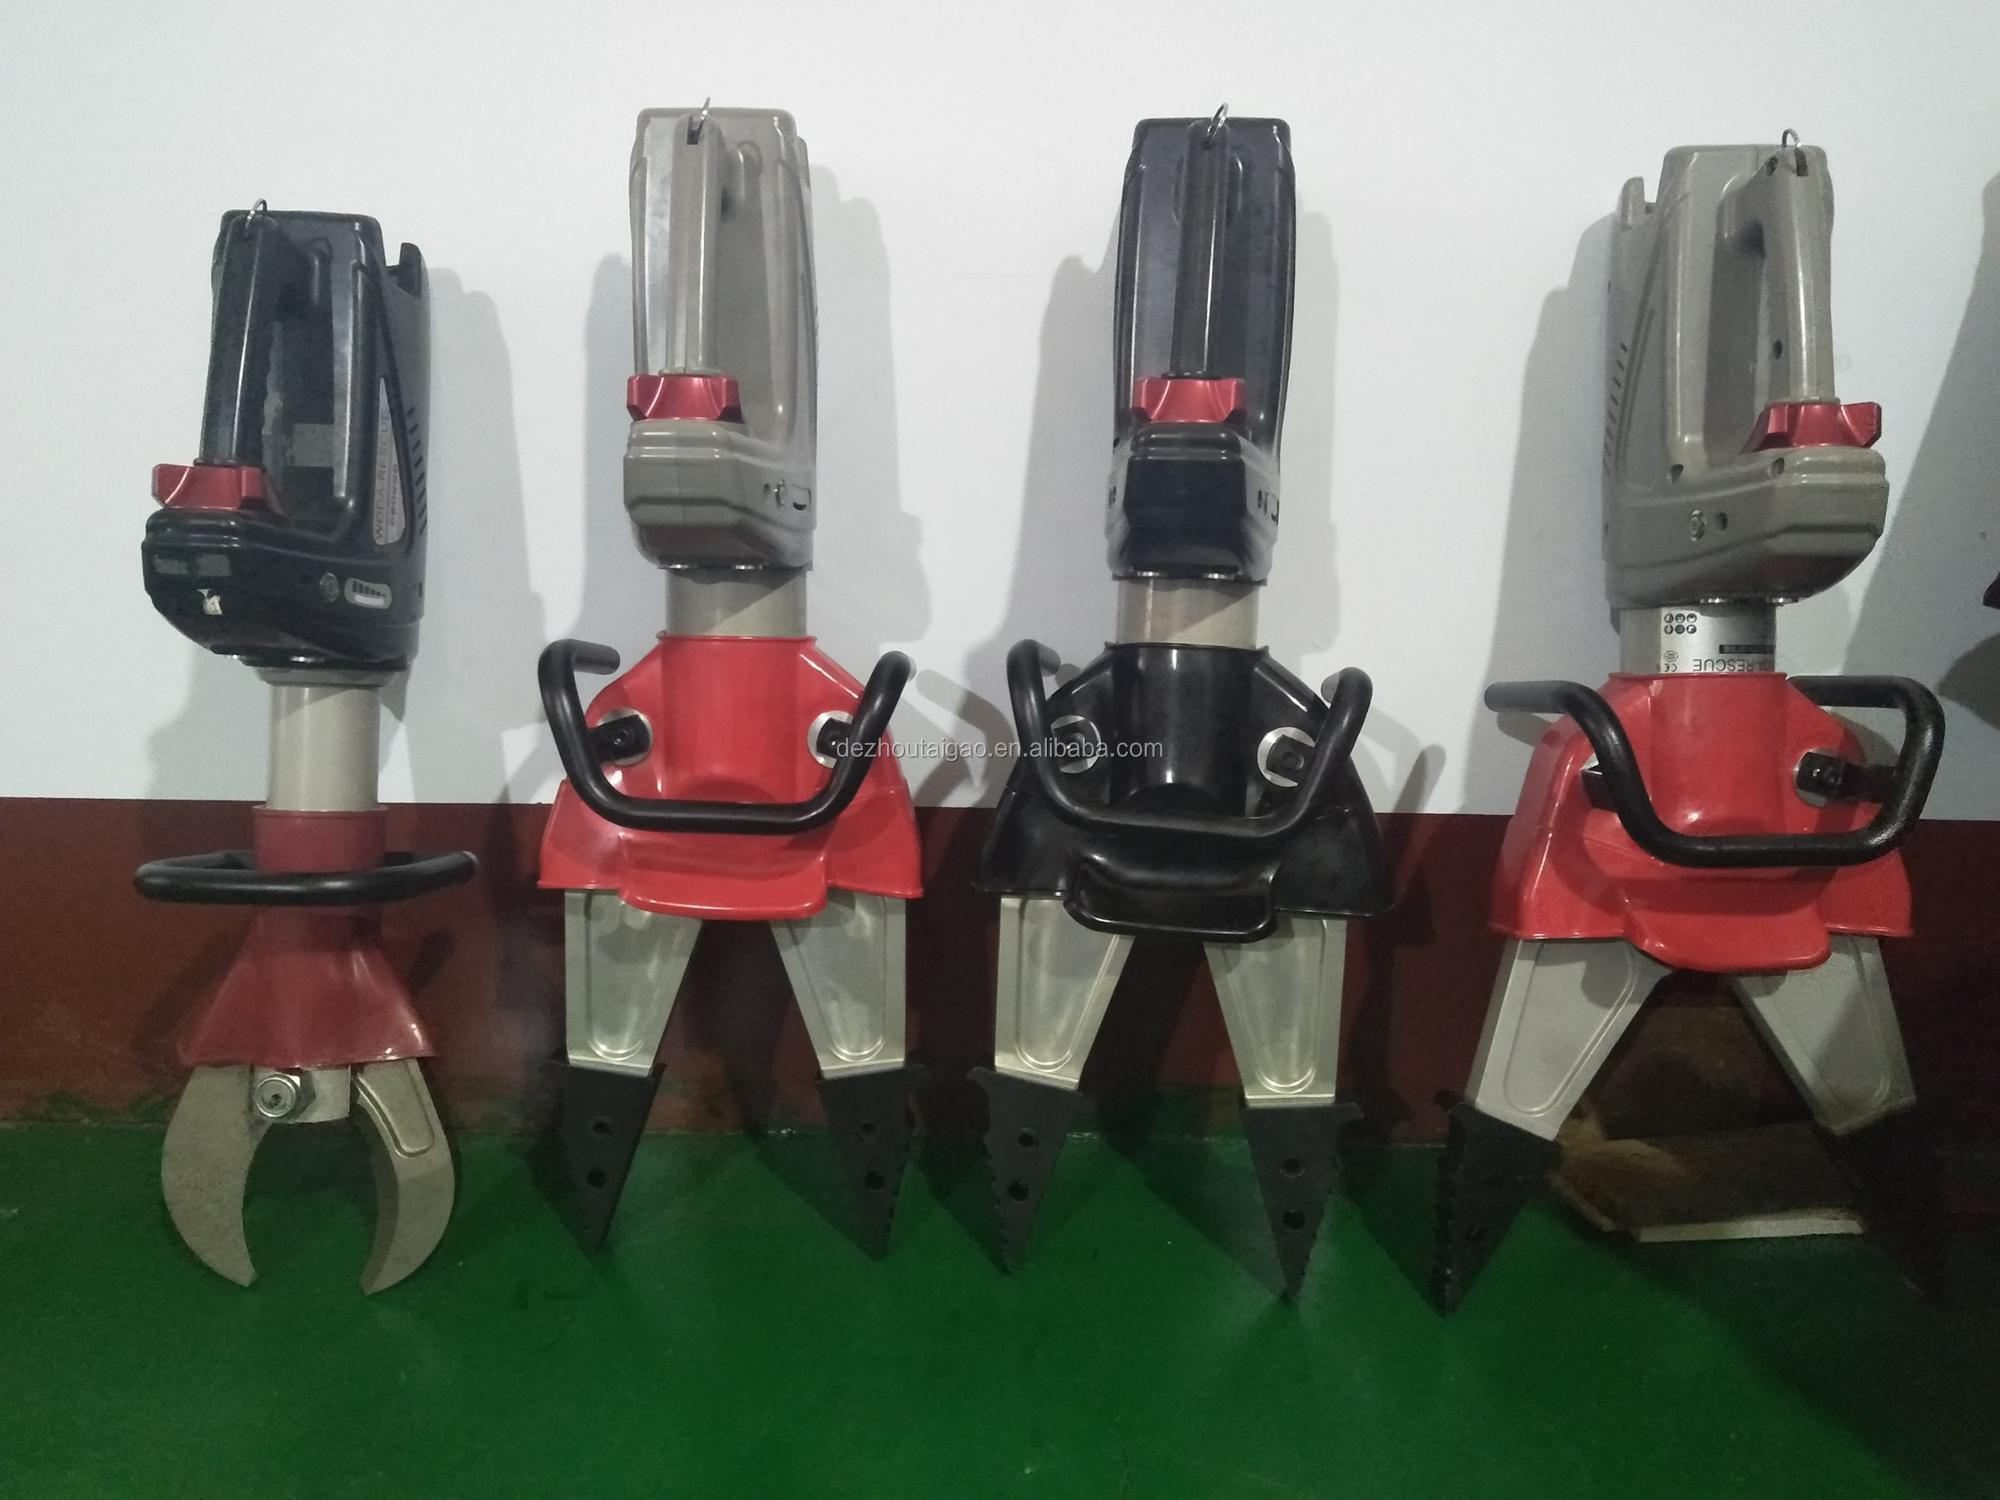 Electric hydraulic rescue spreader tools with great quality electric spreader machine